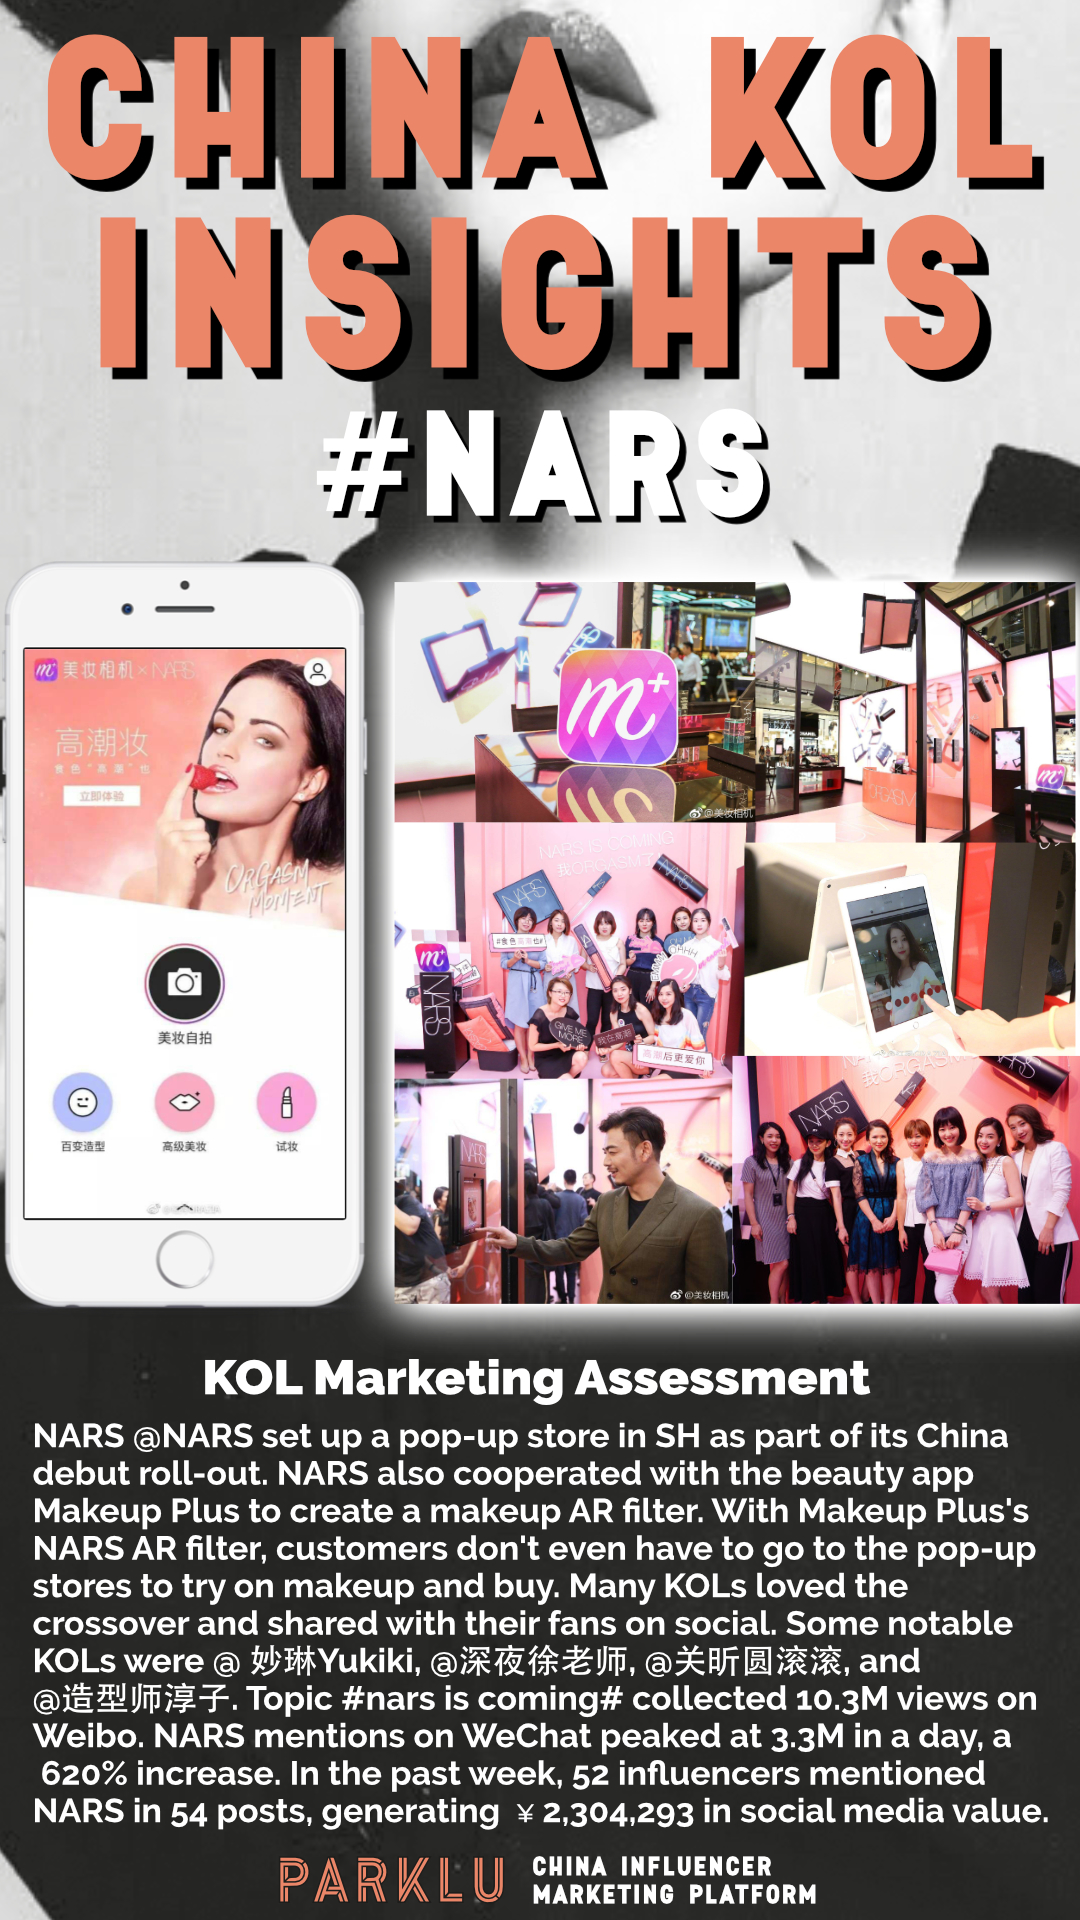 Unique experience + Influencer + Incentives = Great New Retail O2O Marketing